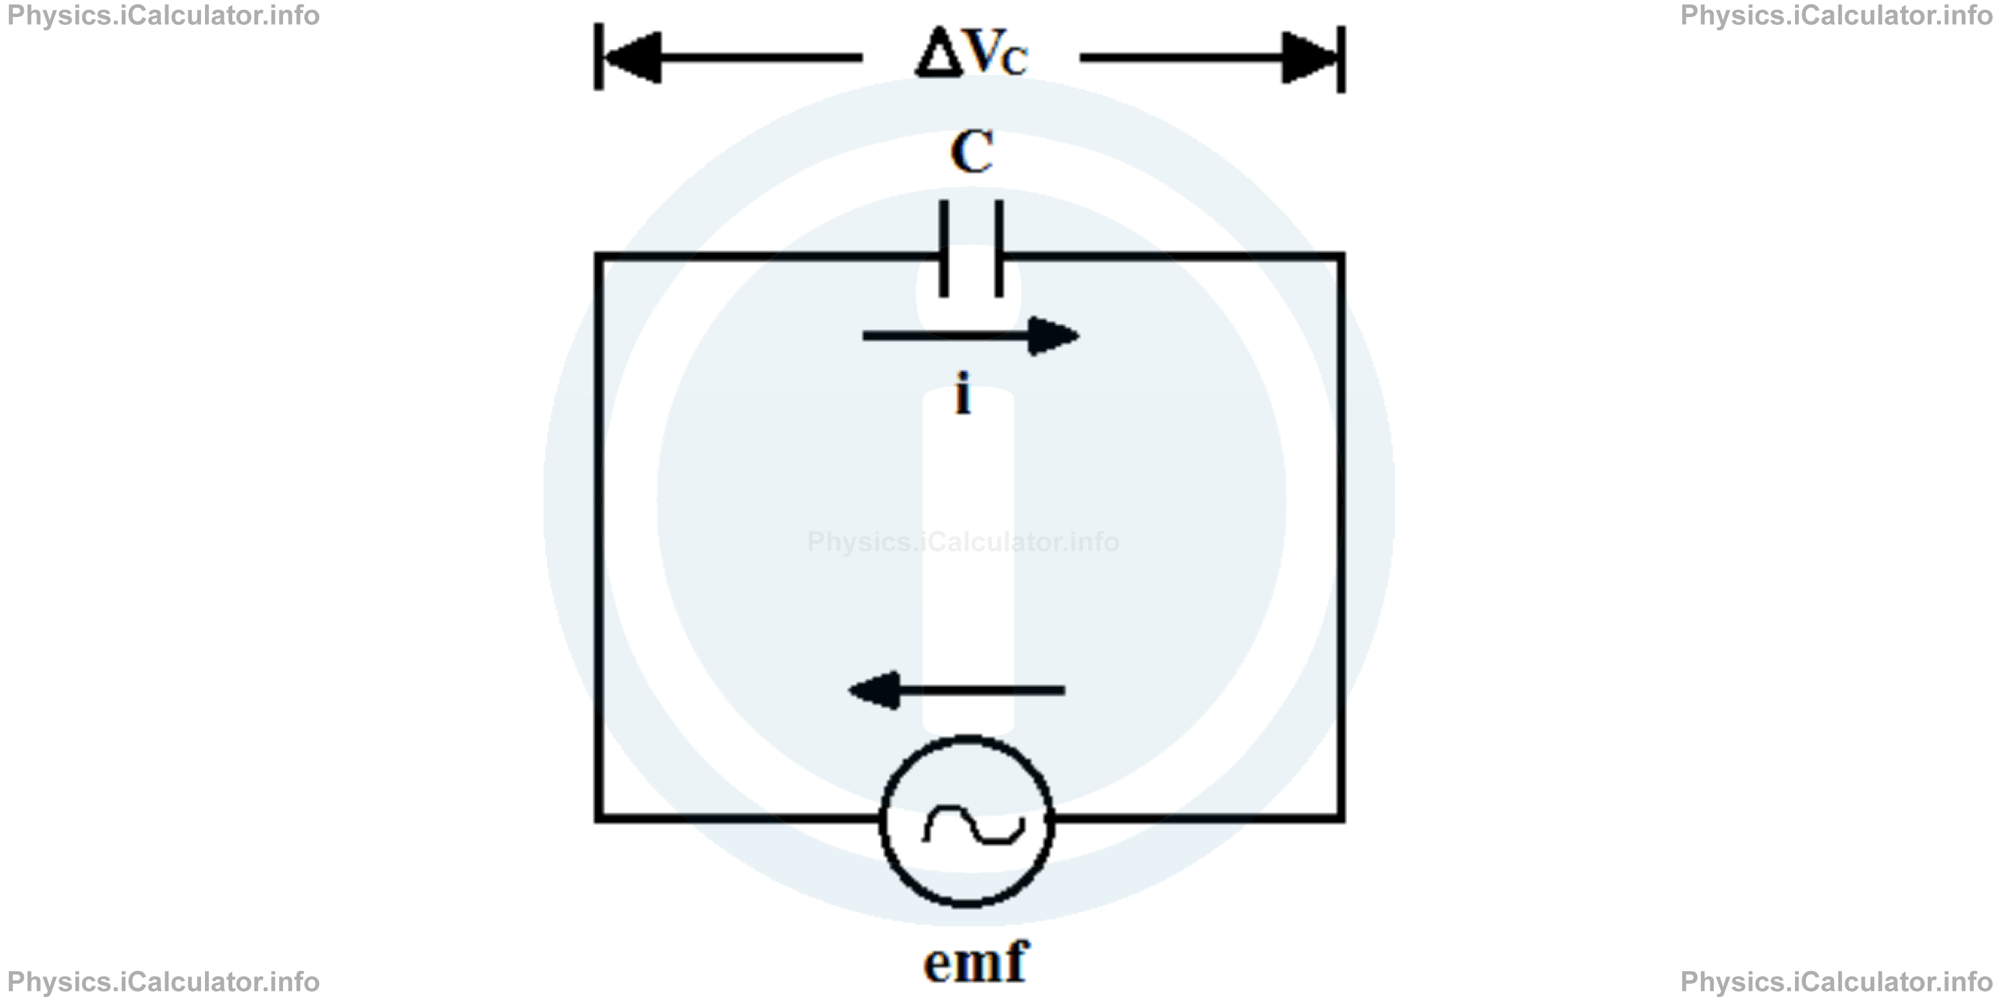 Physics Tutorials: This image provides visual information for the physics tutorial Introduction to RLC Circuits